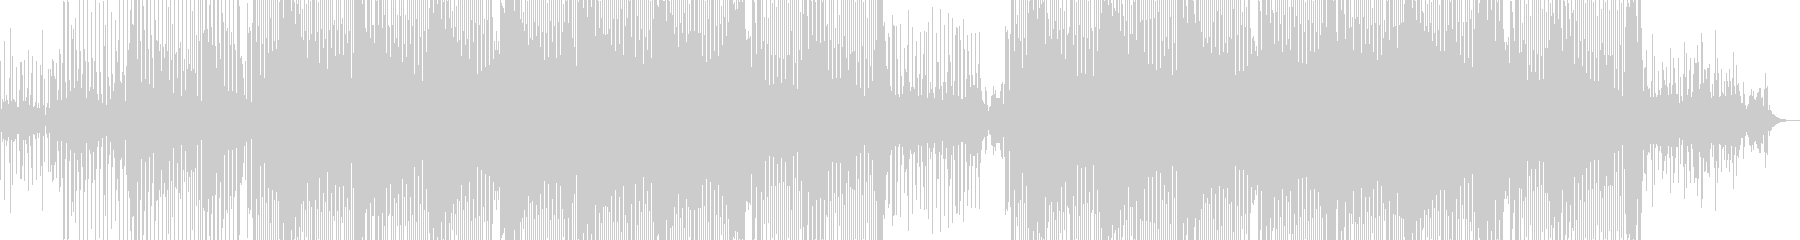 Latin-like pop synth music's unreproduced waveform